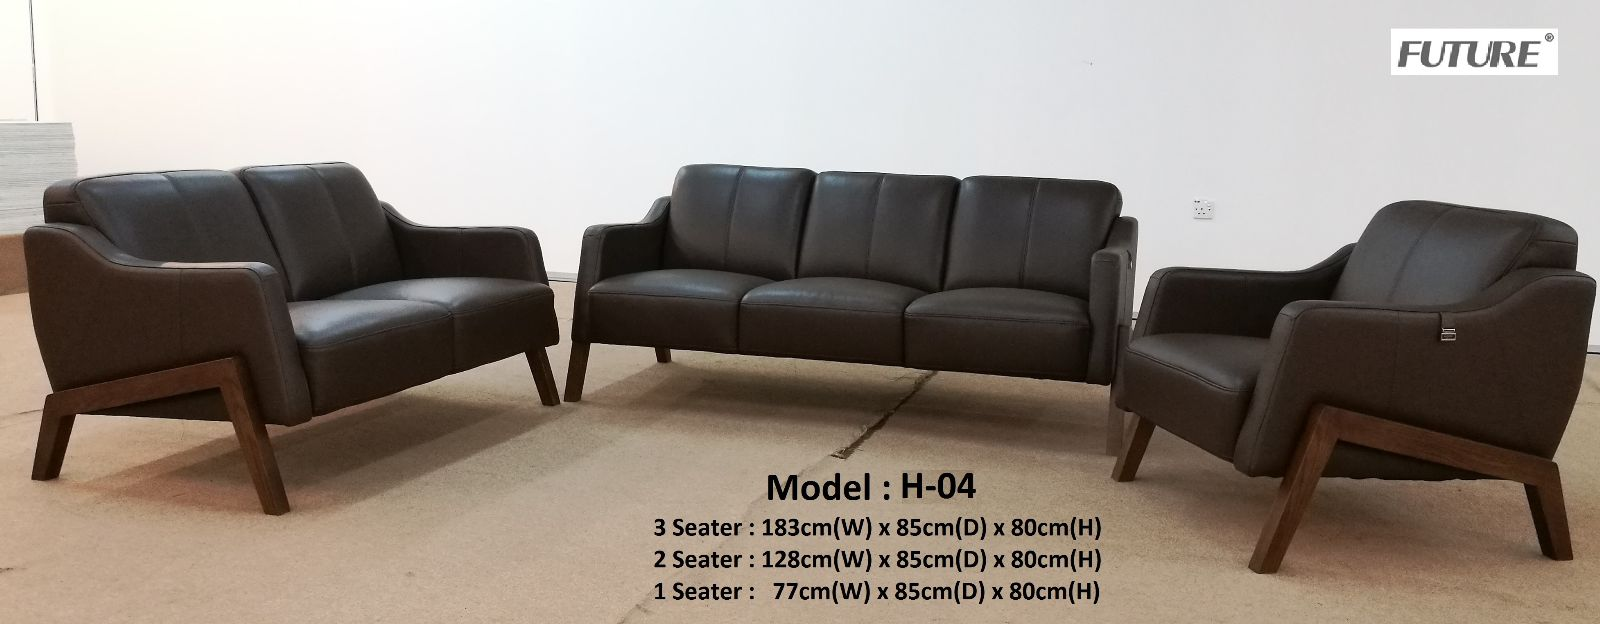 SOFA BĂNG DA BÒ - FUTURE MODEL H-04